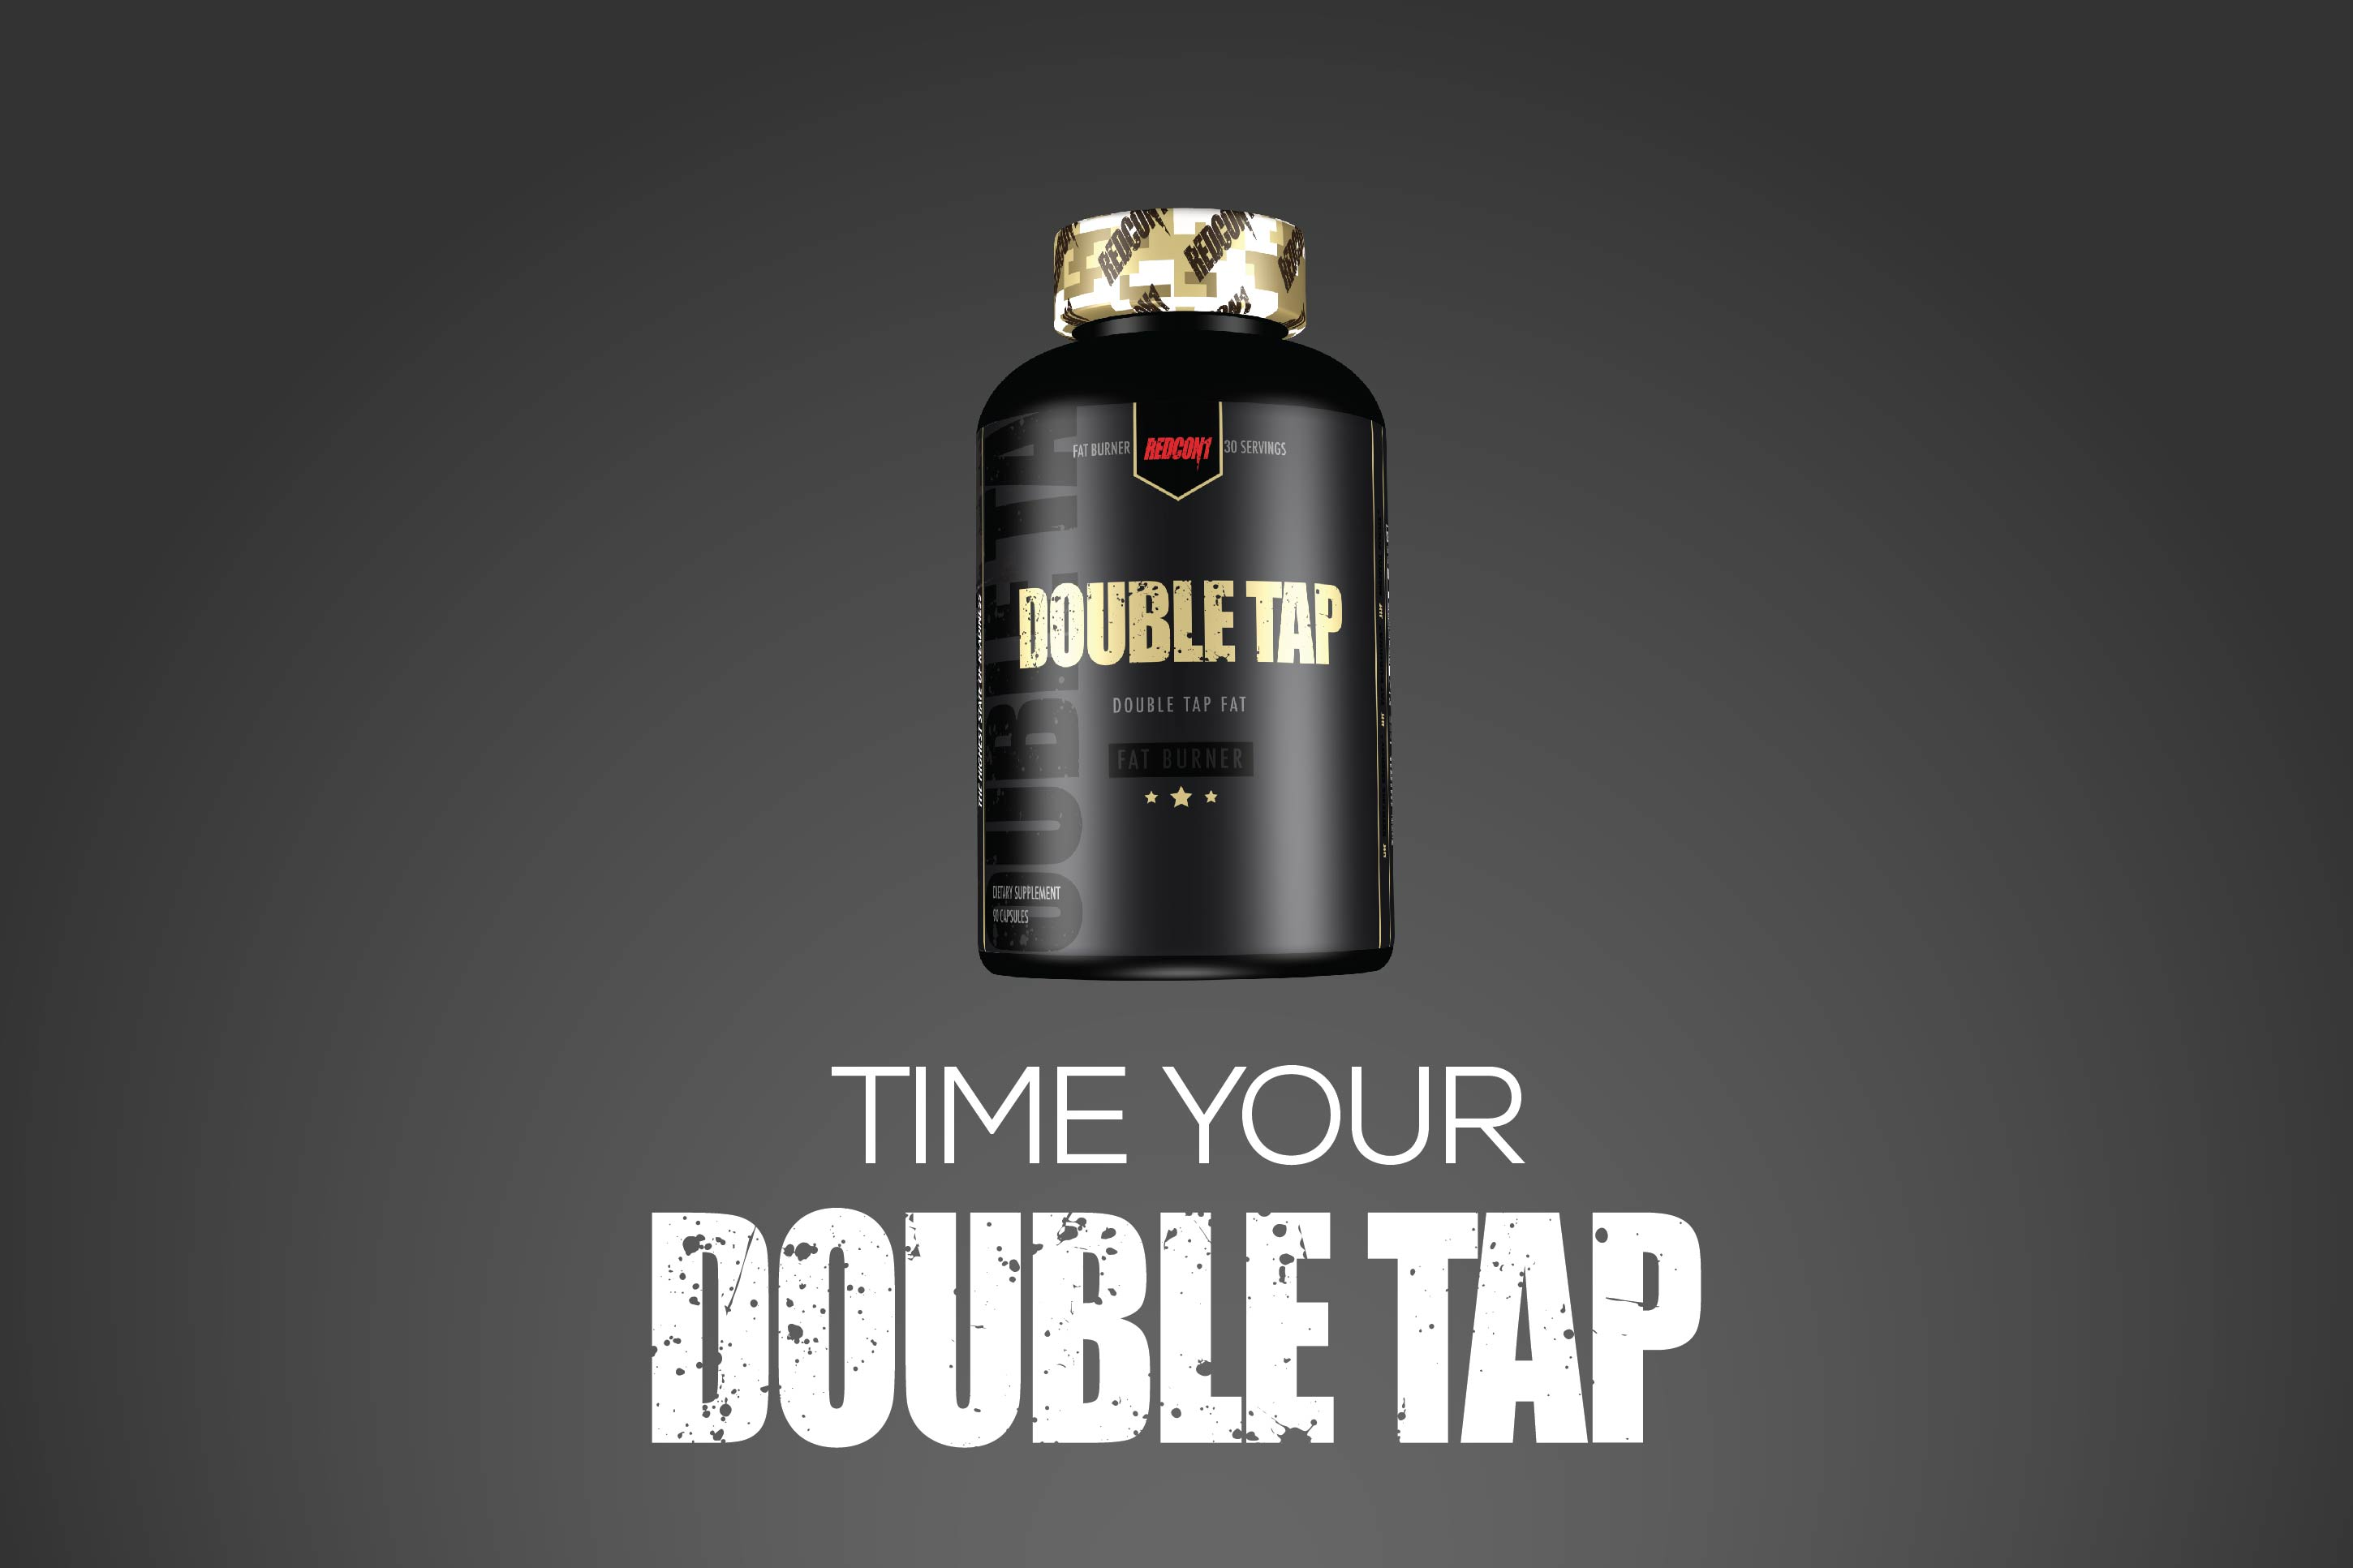 Time Your Double Tap - Redcon1 Online Official